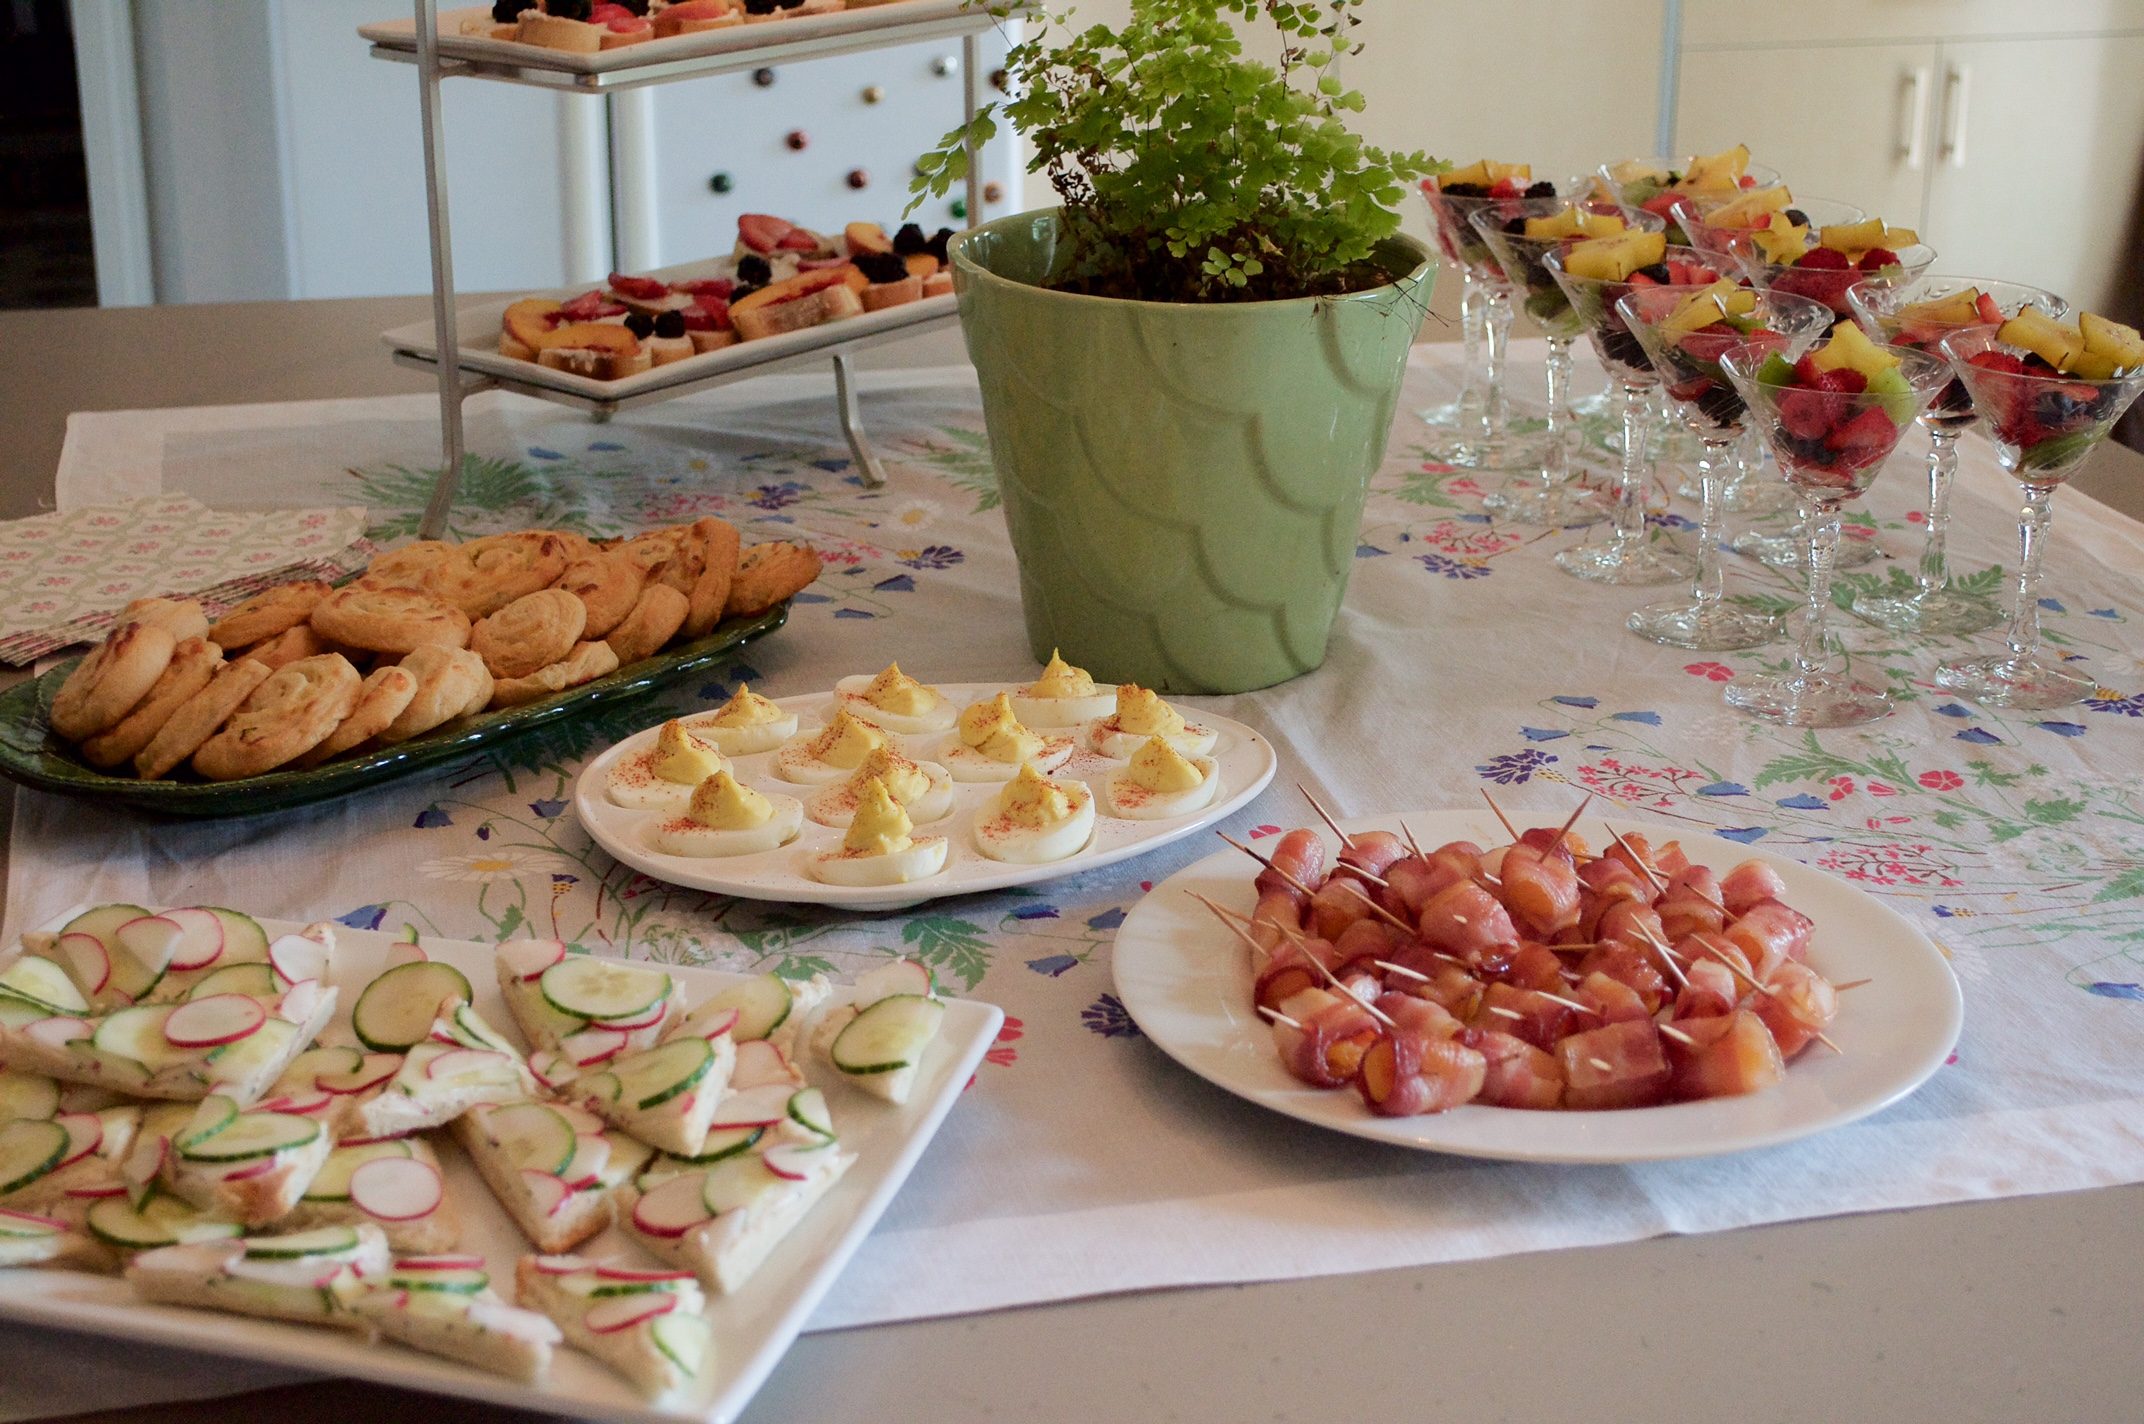 Tea sandwiches, savory baked pimento cheese pinwheels, deviled eggs, bacon-wrapped apricots, goat cheese honey and fruit crostini